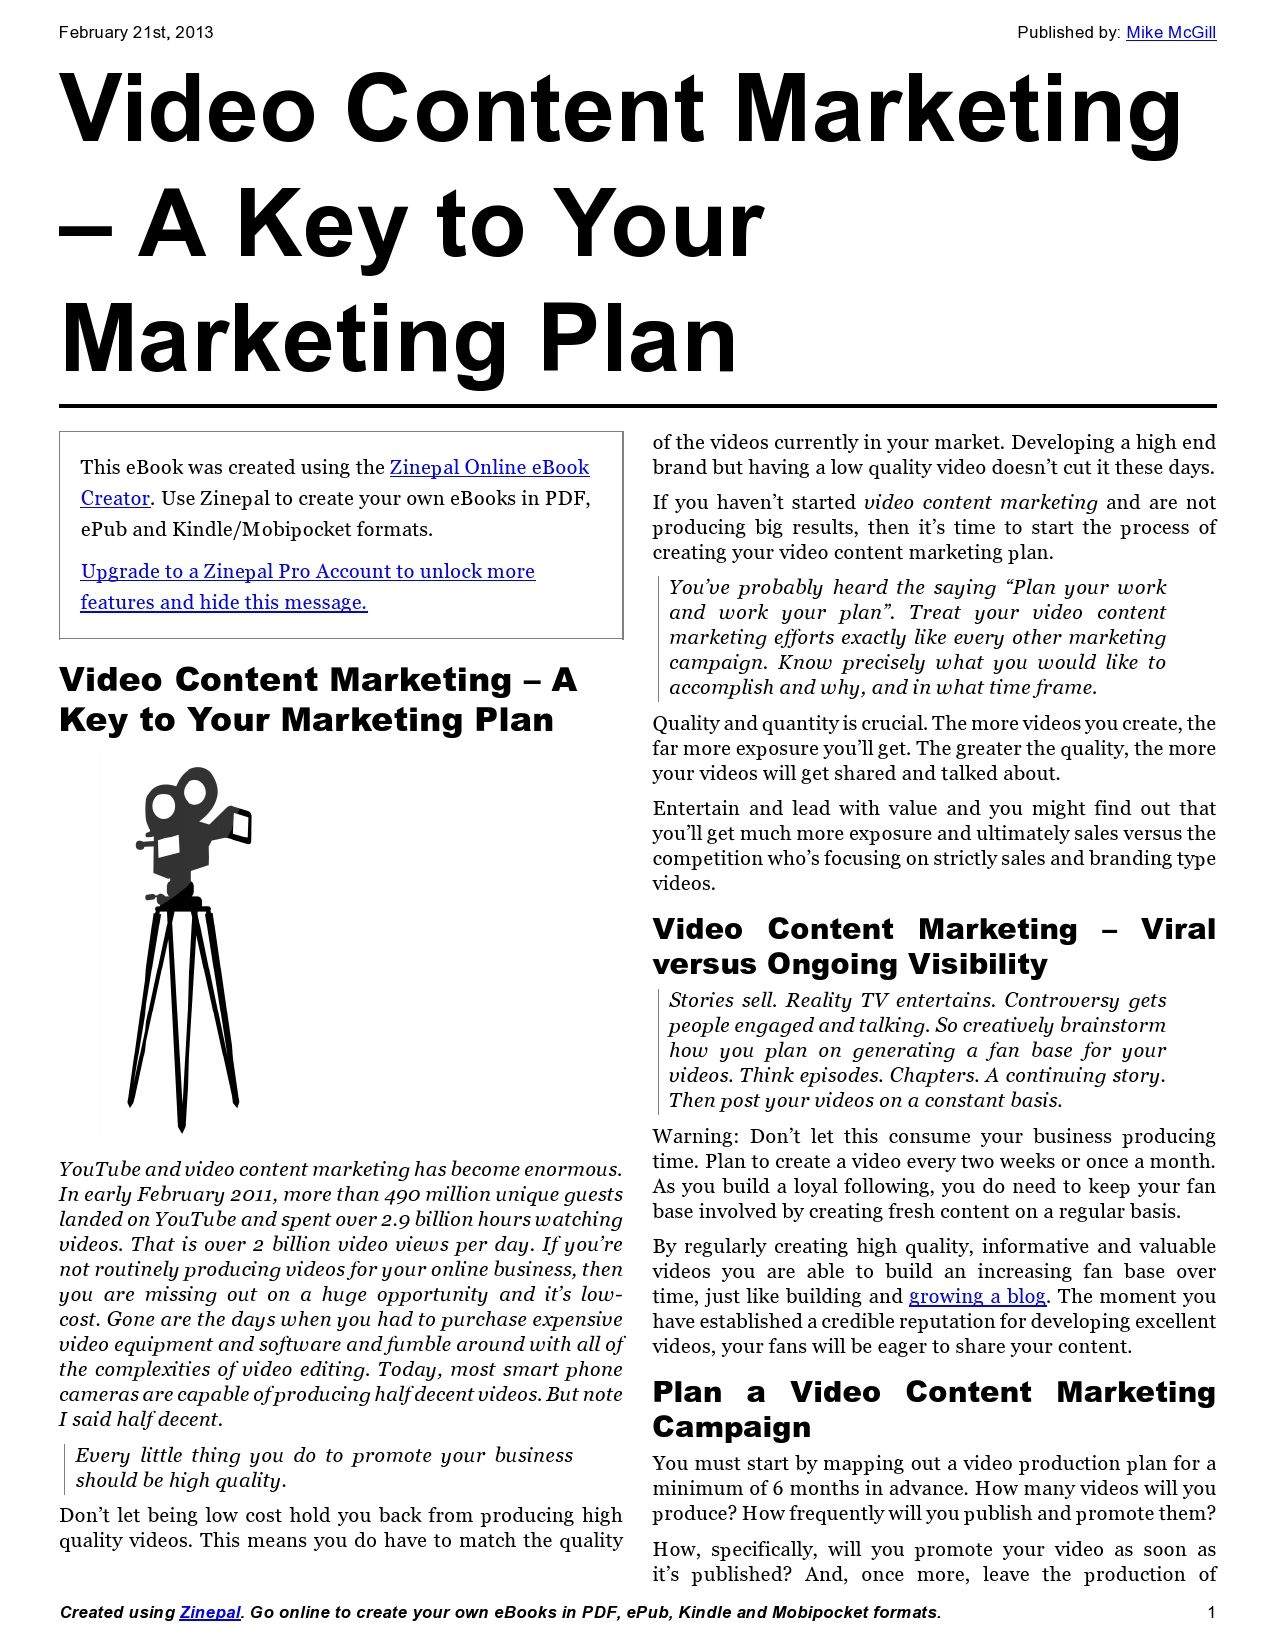 Video Content Marketing  A Key To Your Marketing Plan  Document